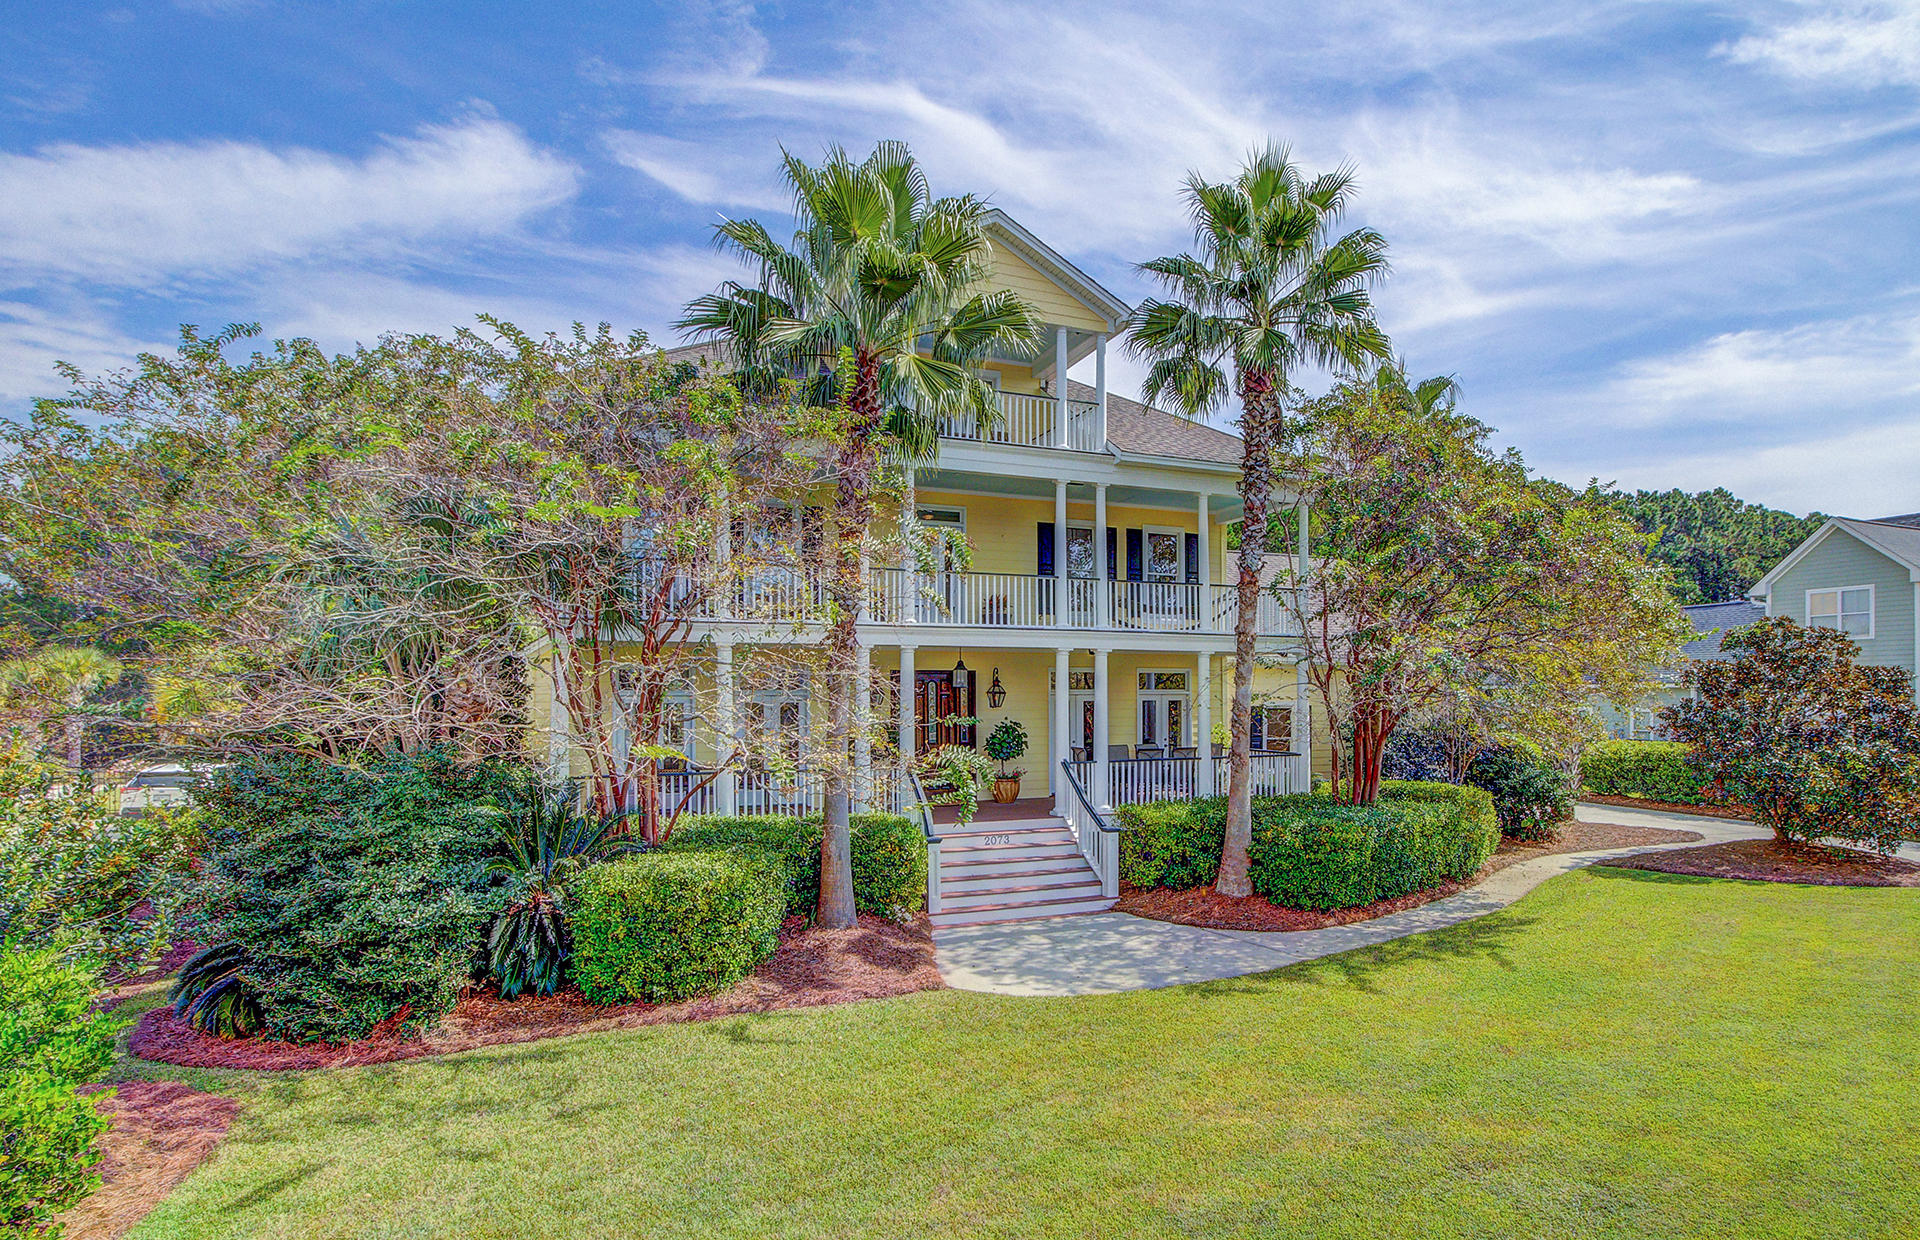 Rivertowne On The Wando Homes For Sale - 2073 Willbrook, Mount Pleasant, SC - 24